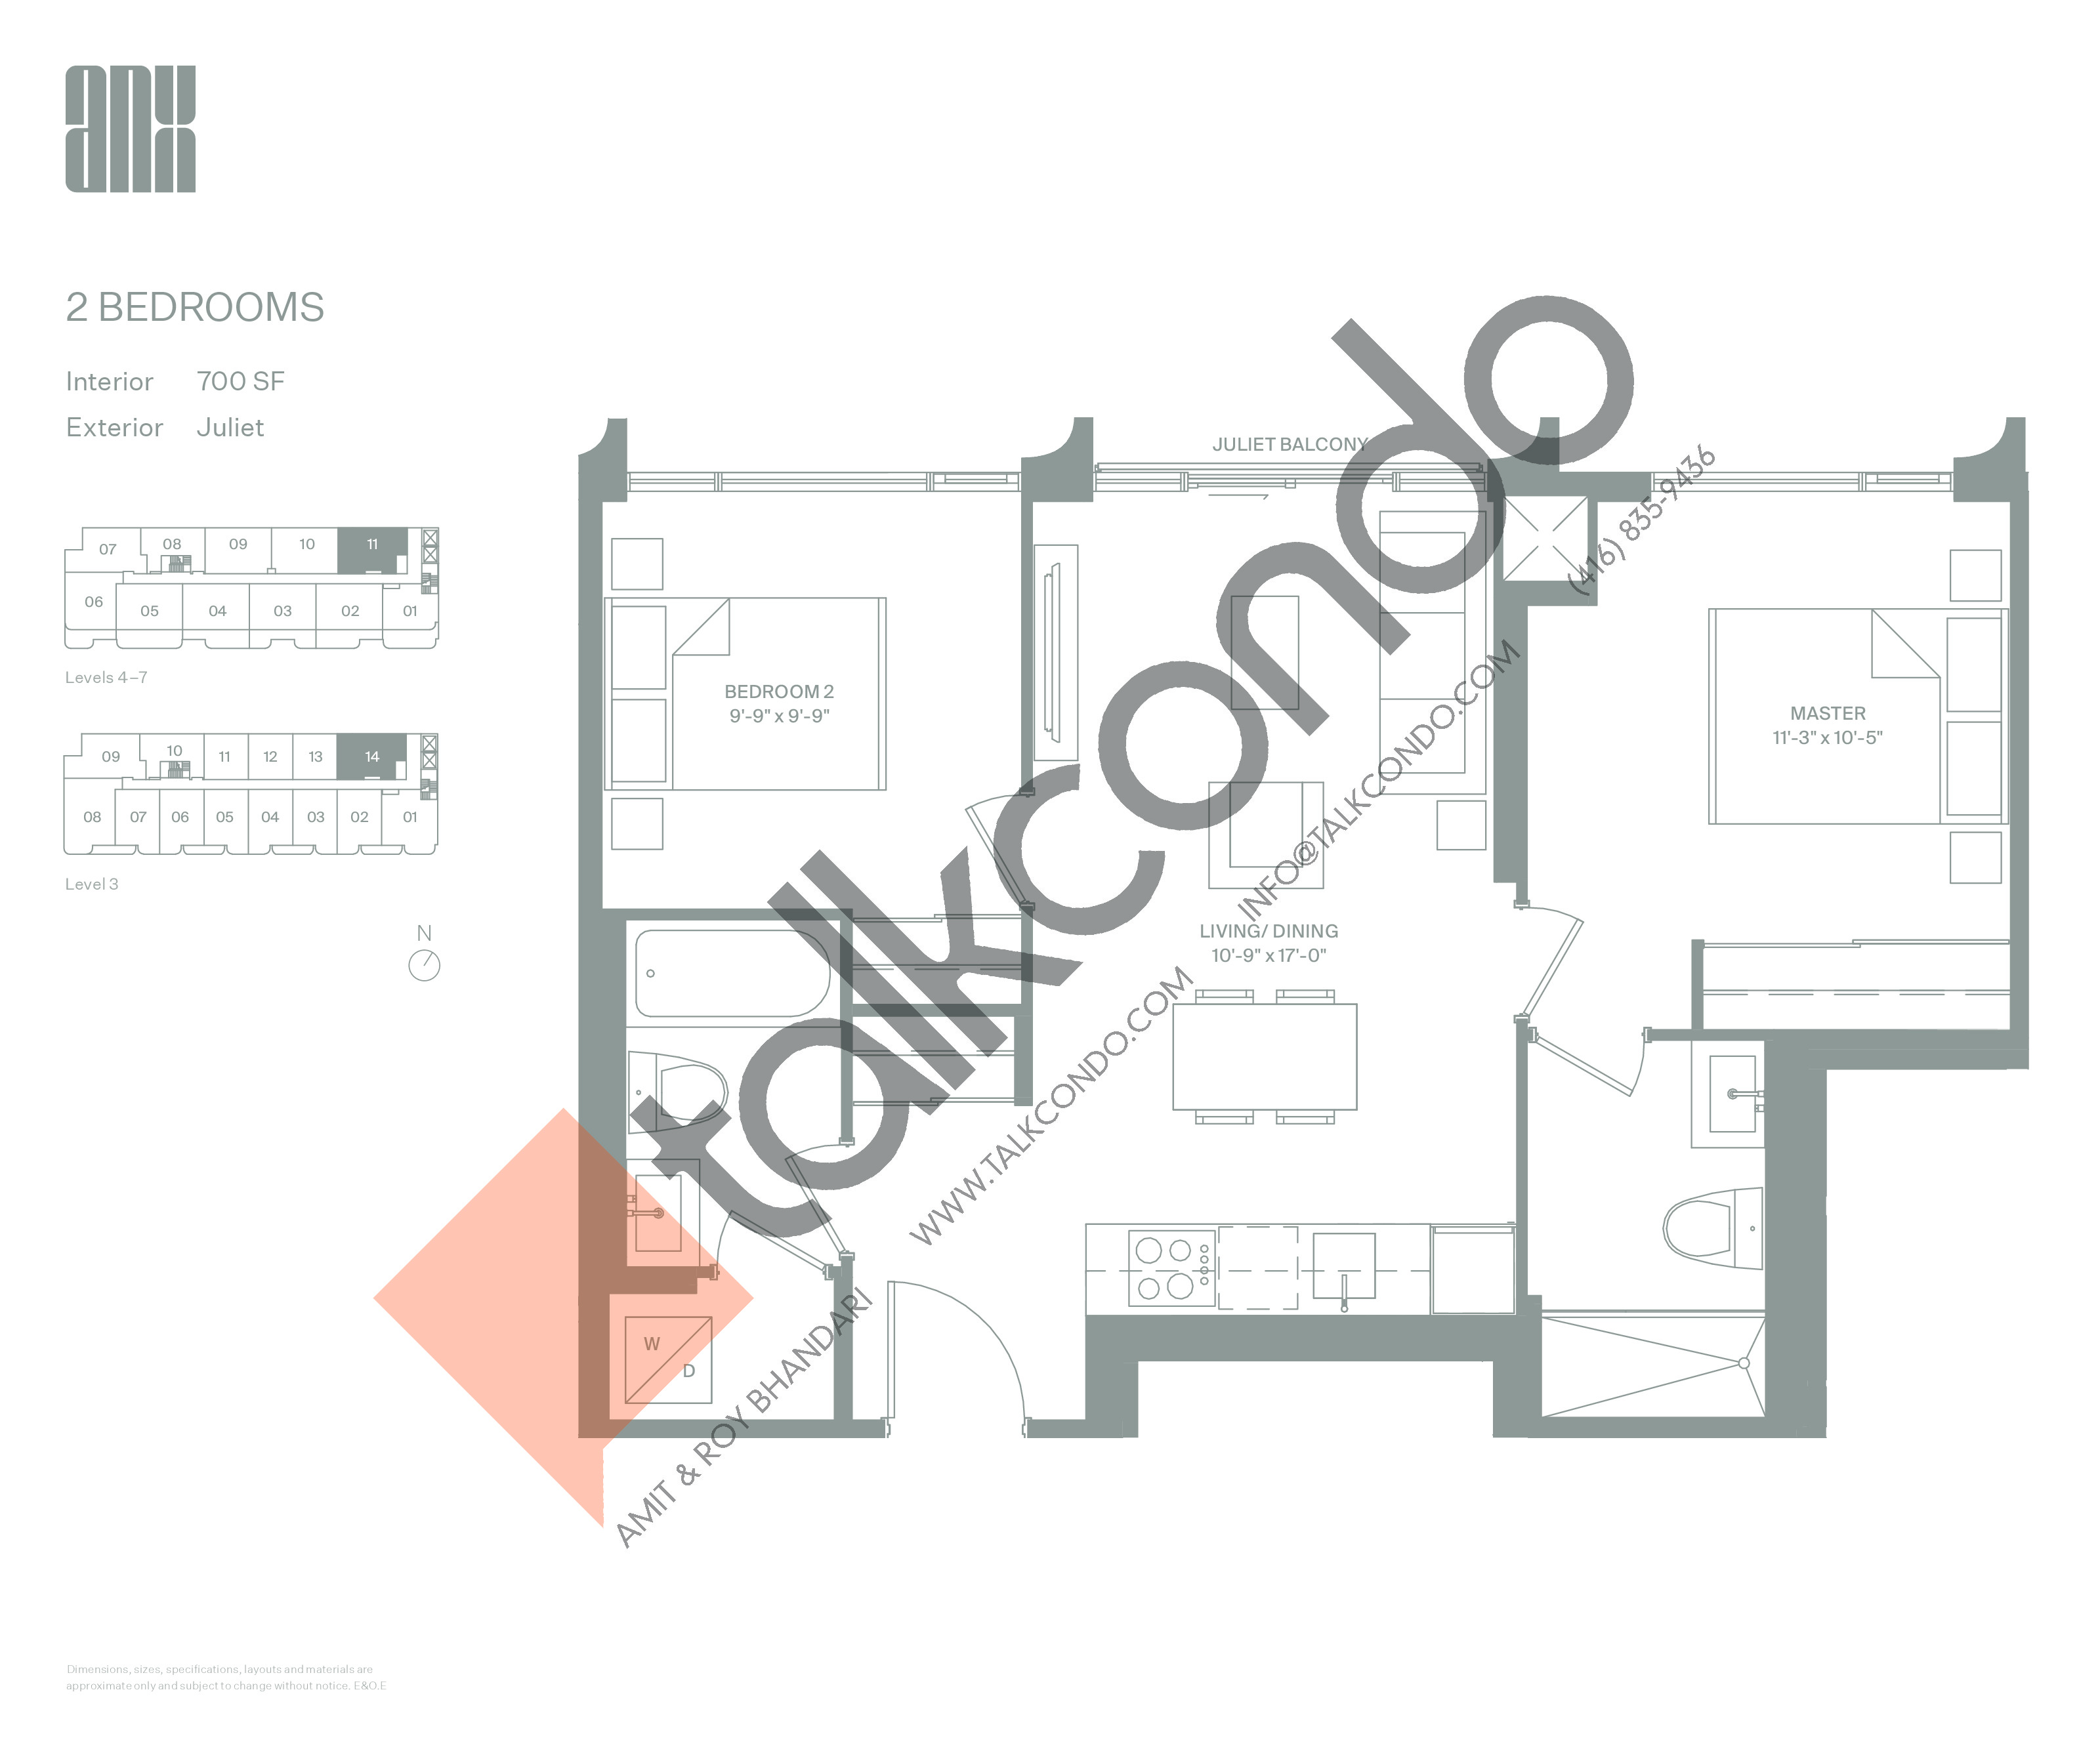 Suite 700 Floor Plan at ANX Condos - 700 sq.ft